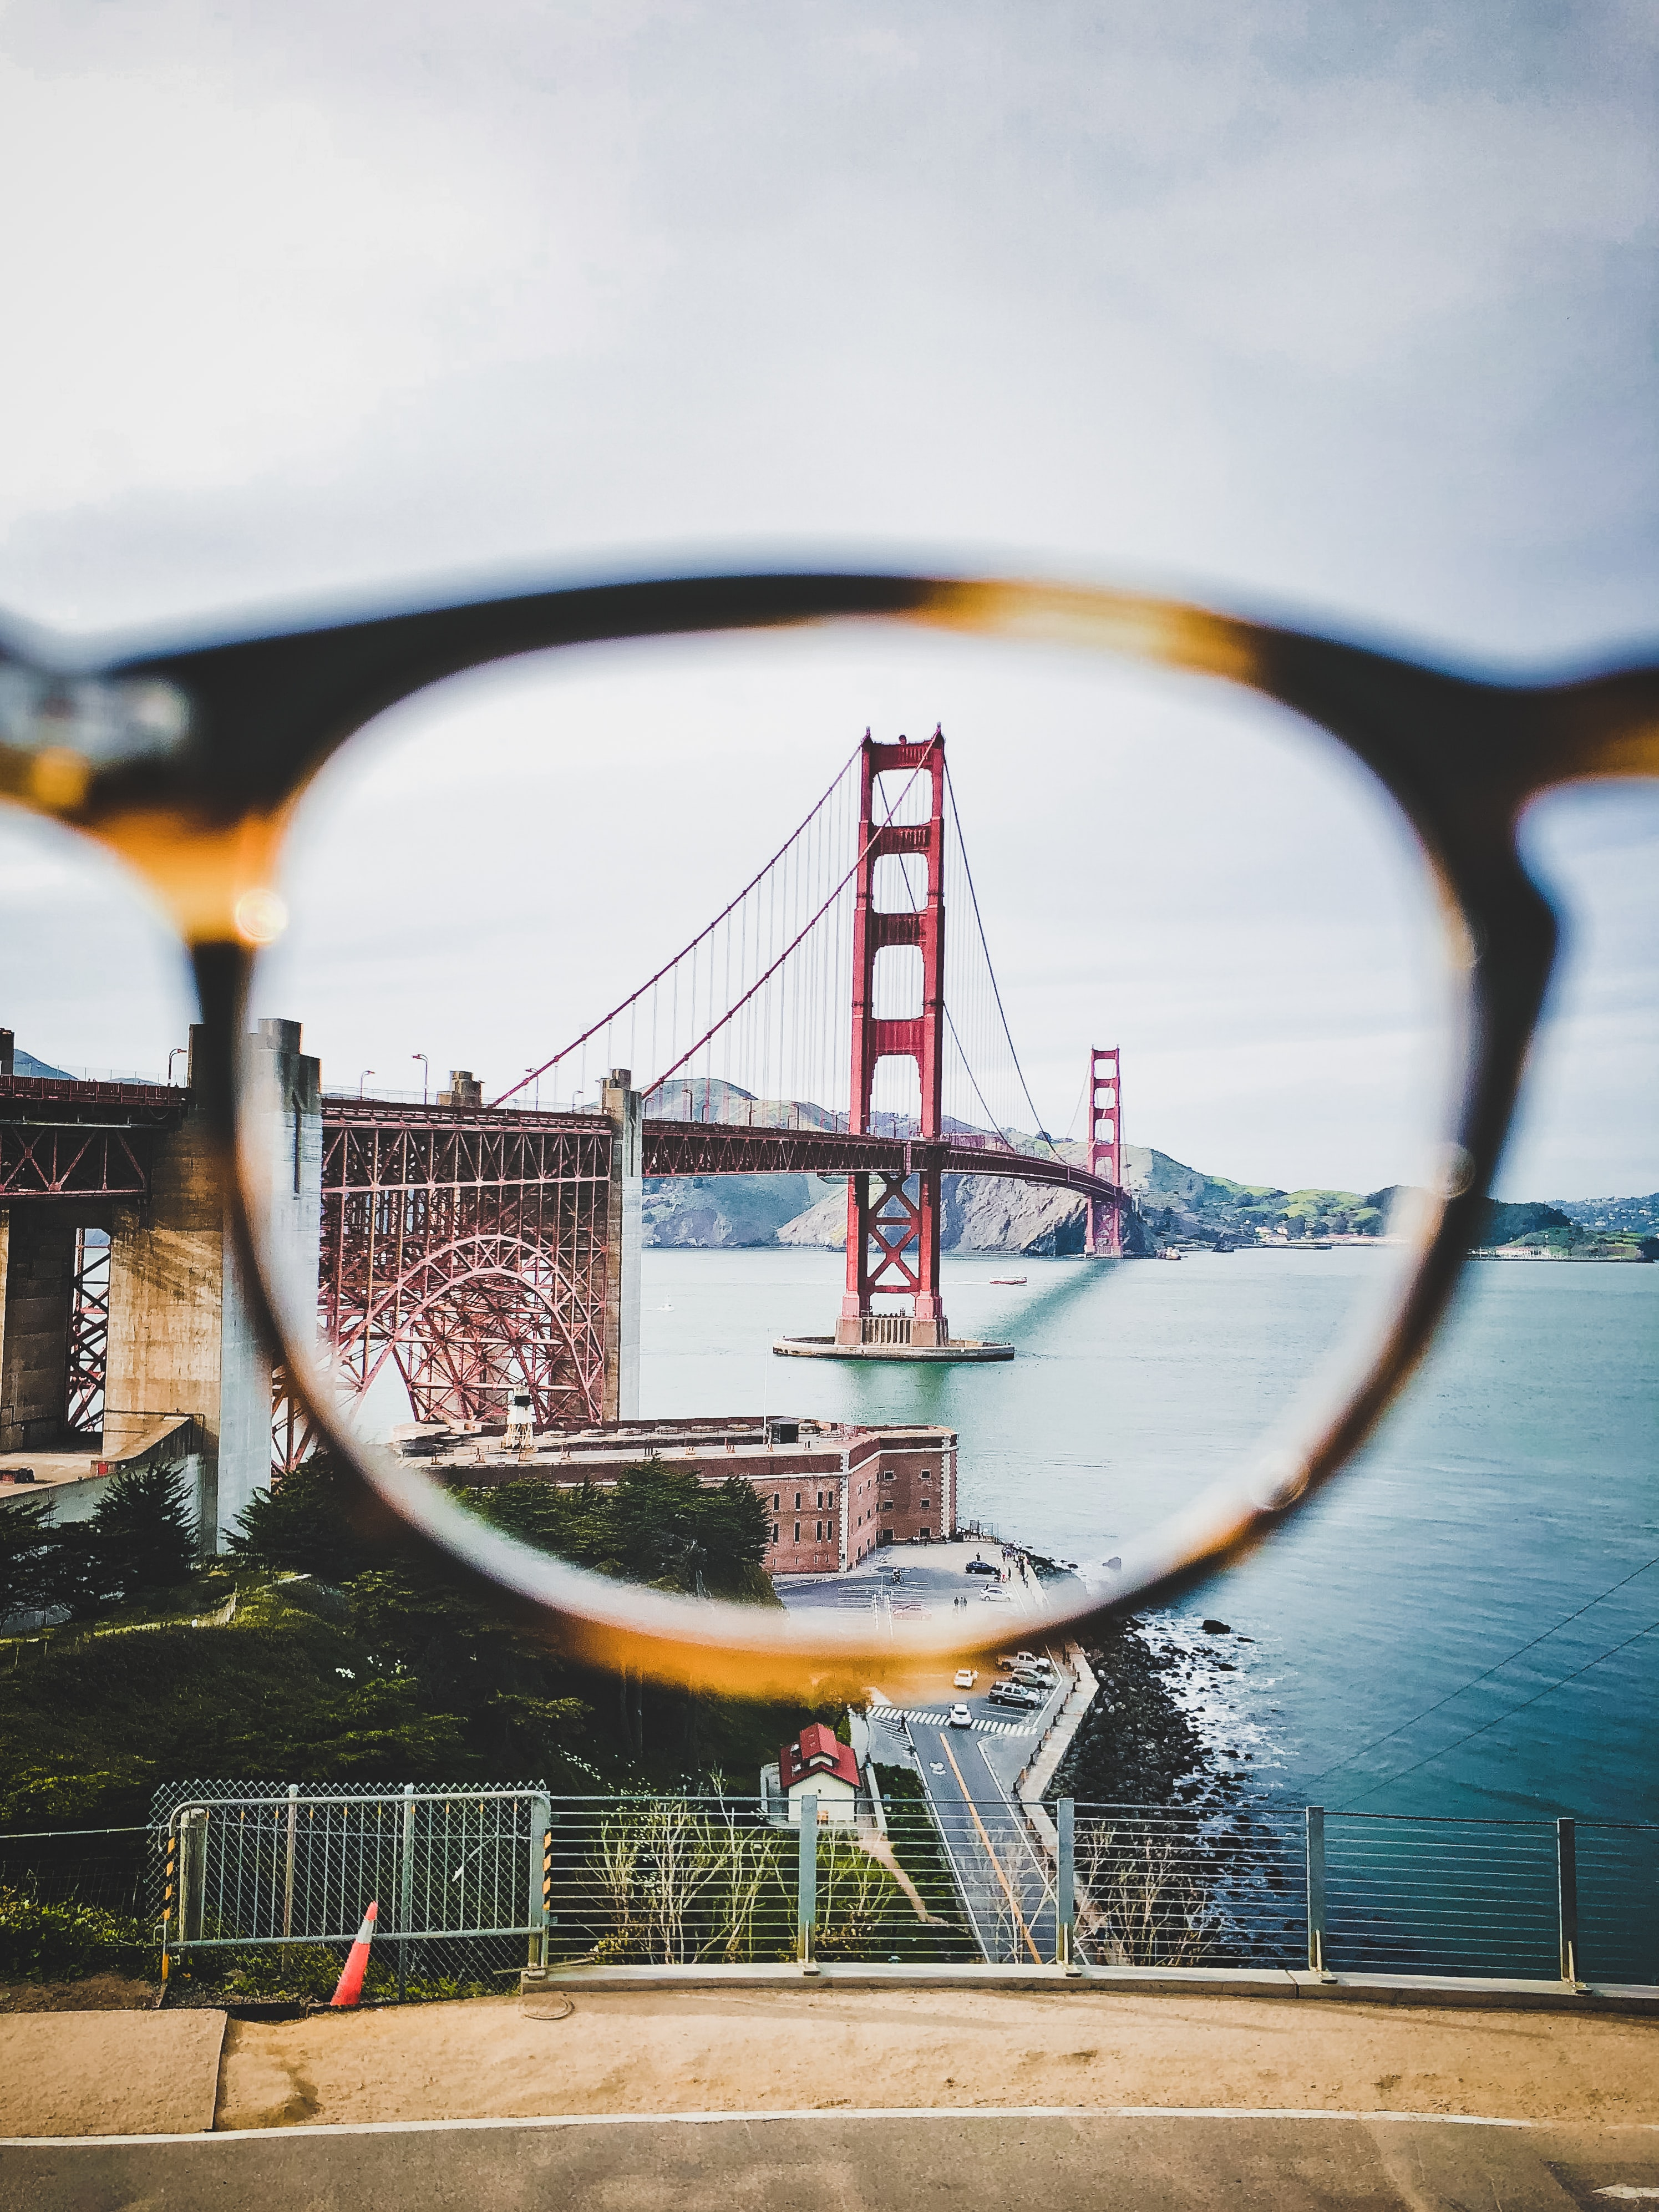 lens photography of Golden Gate Bridge, San Francisco California during daytime